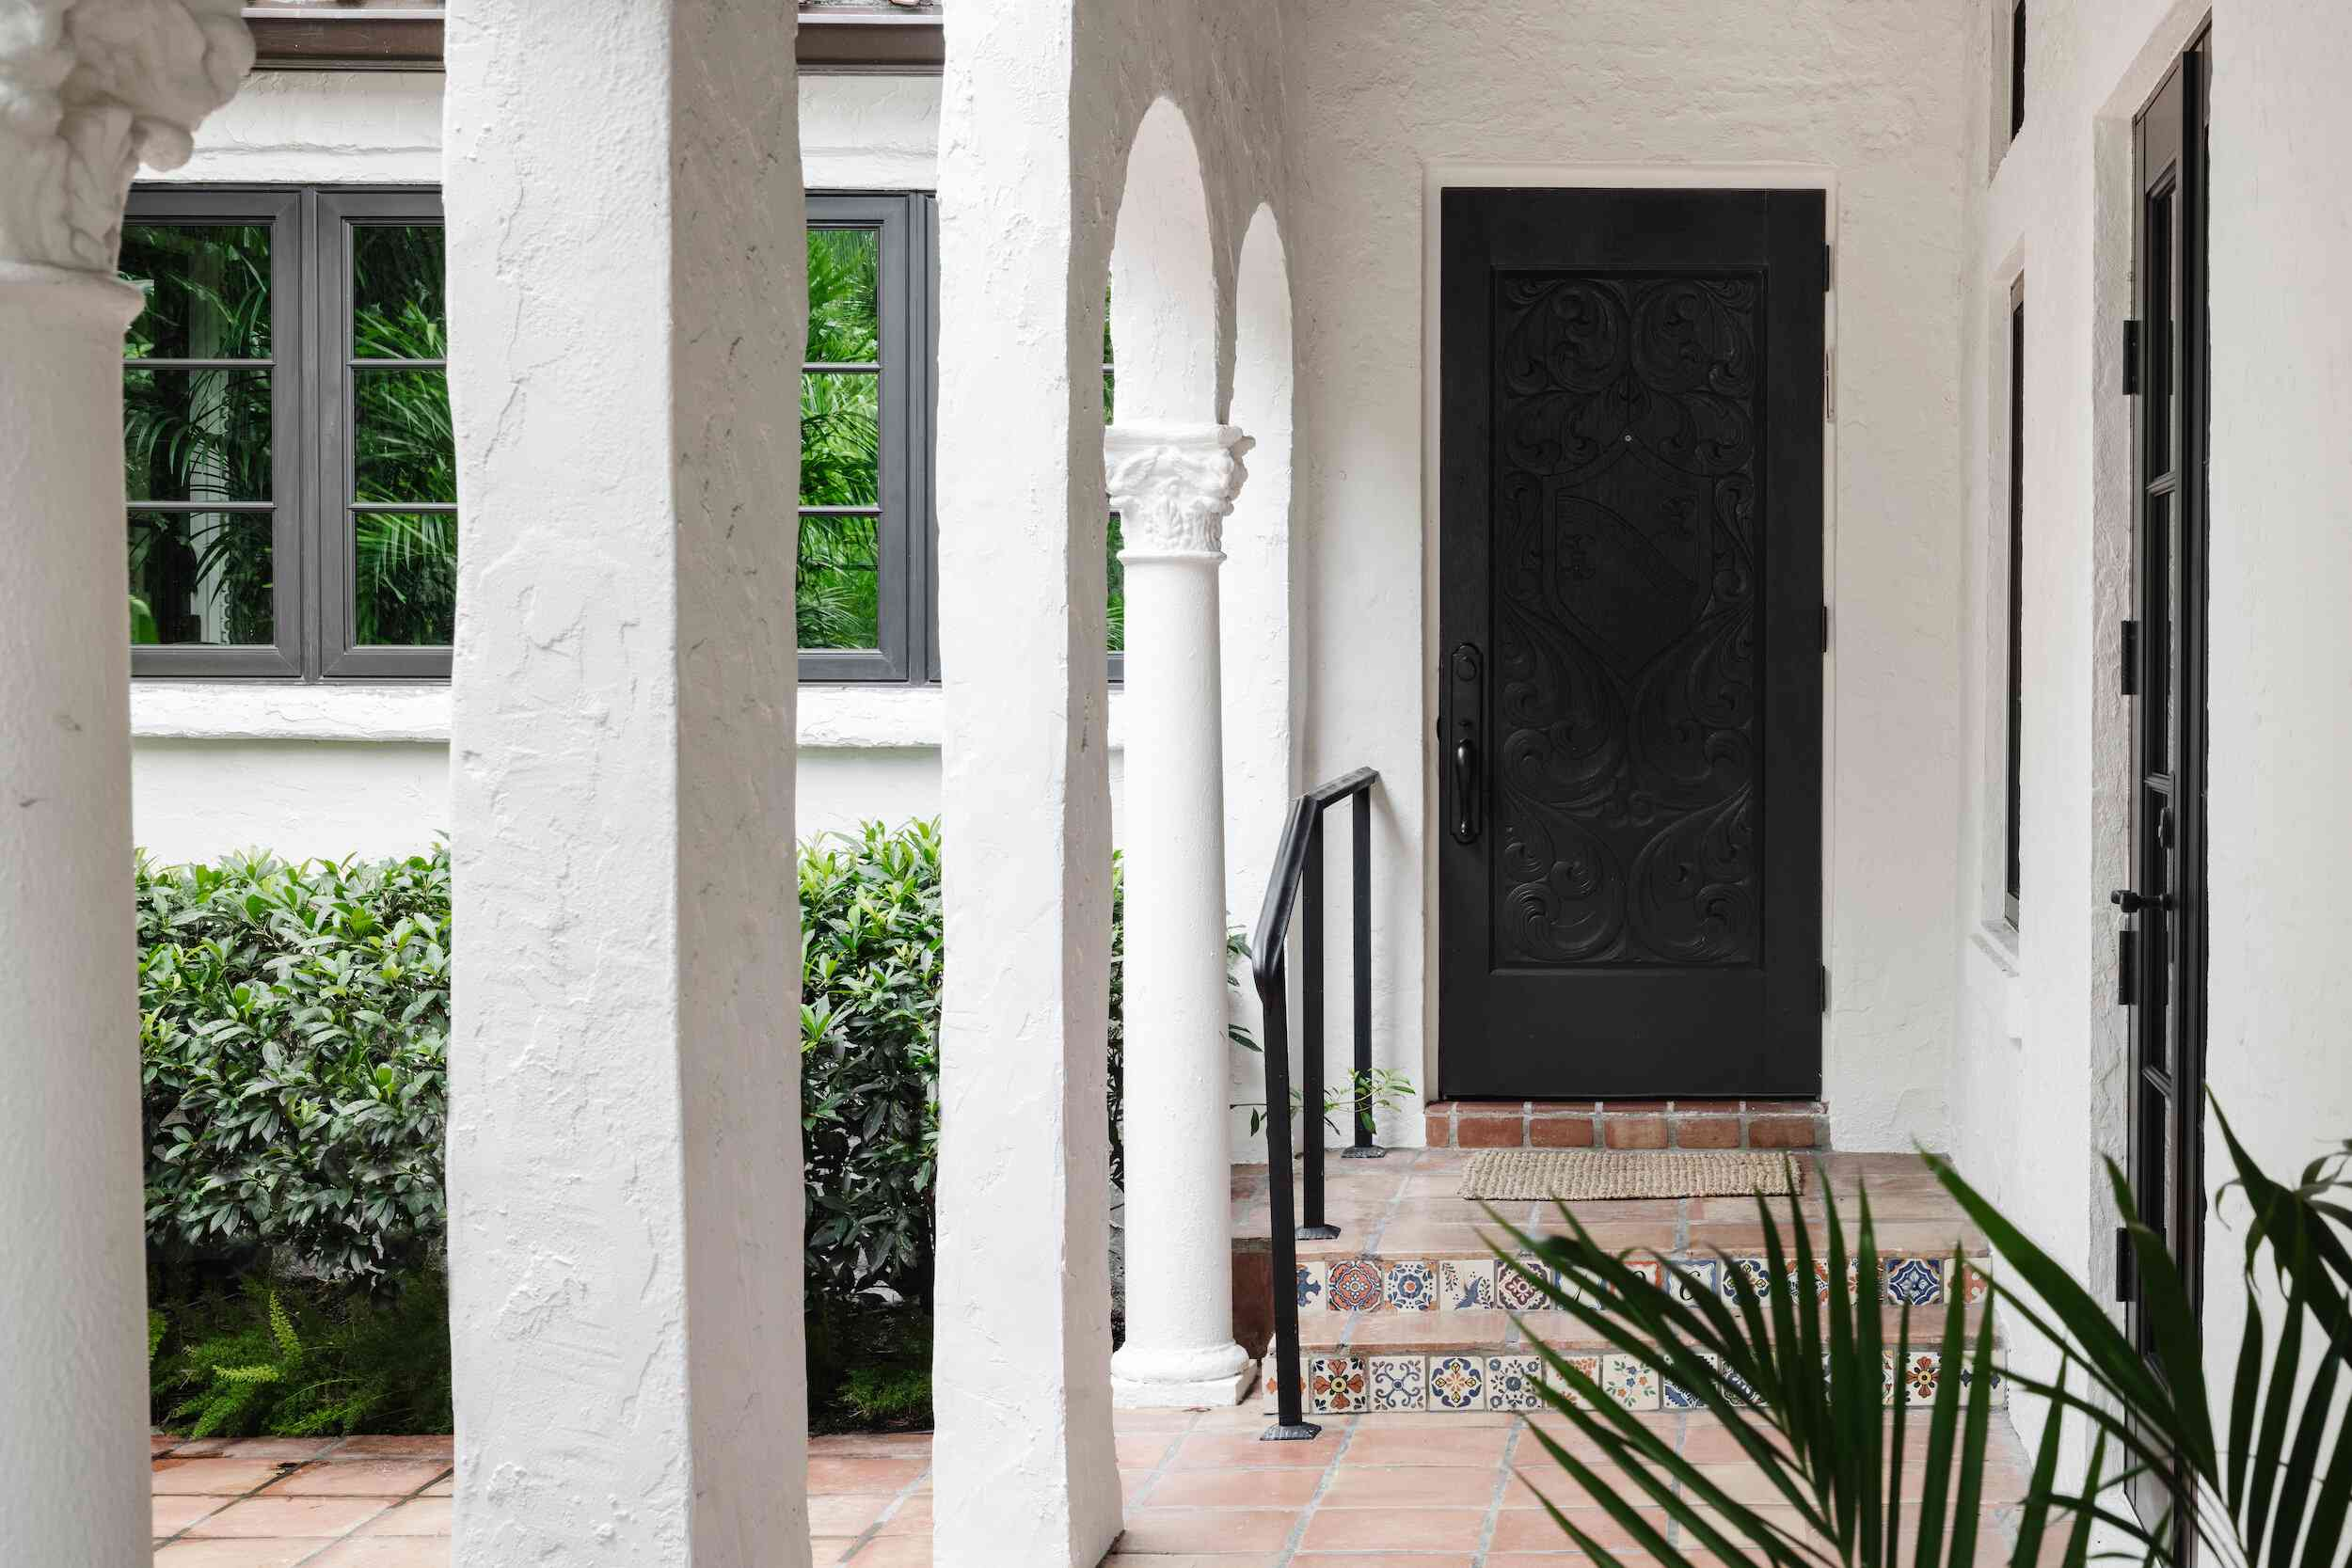 front entryway with columns and tile walkway